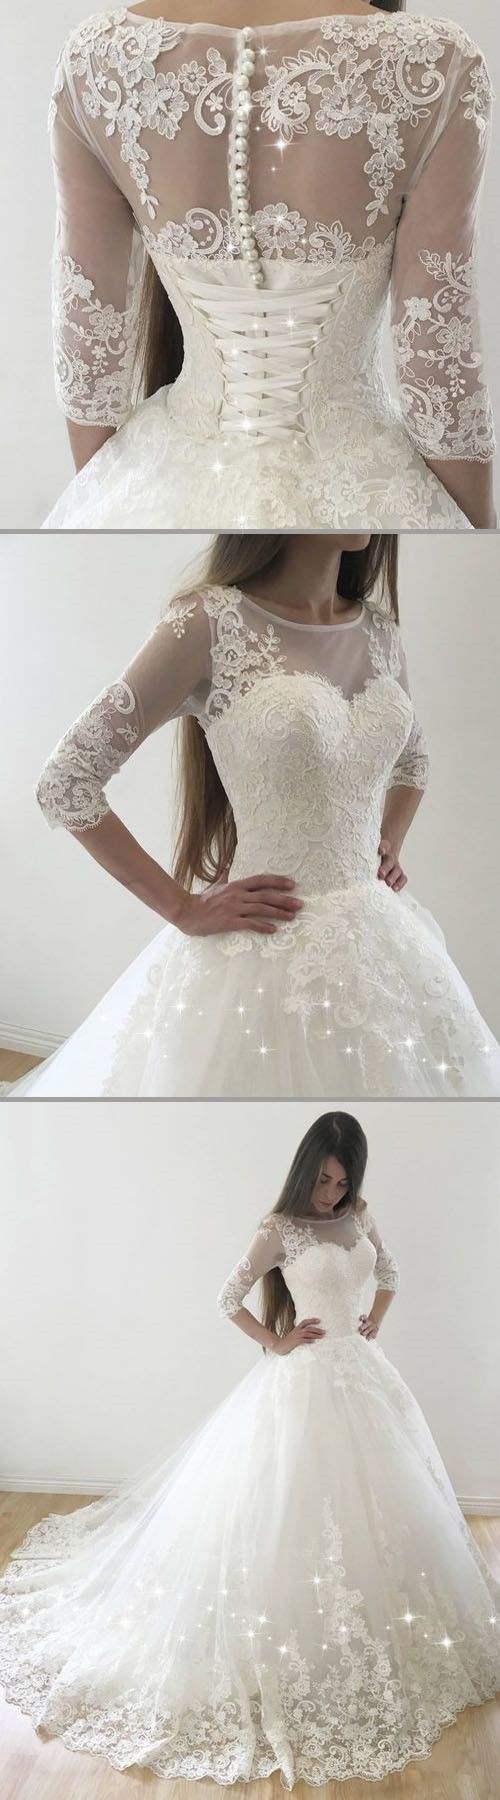 Vintage Tulle Bateau Neckline Ball Gown Wedding Dresses With Lace Appliques #tulleballgown